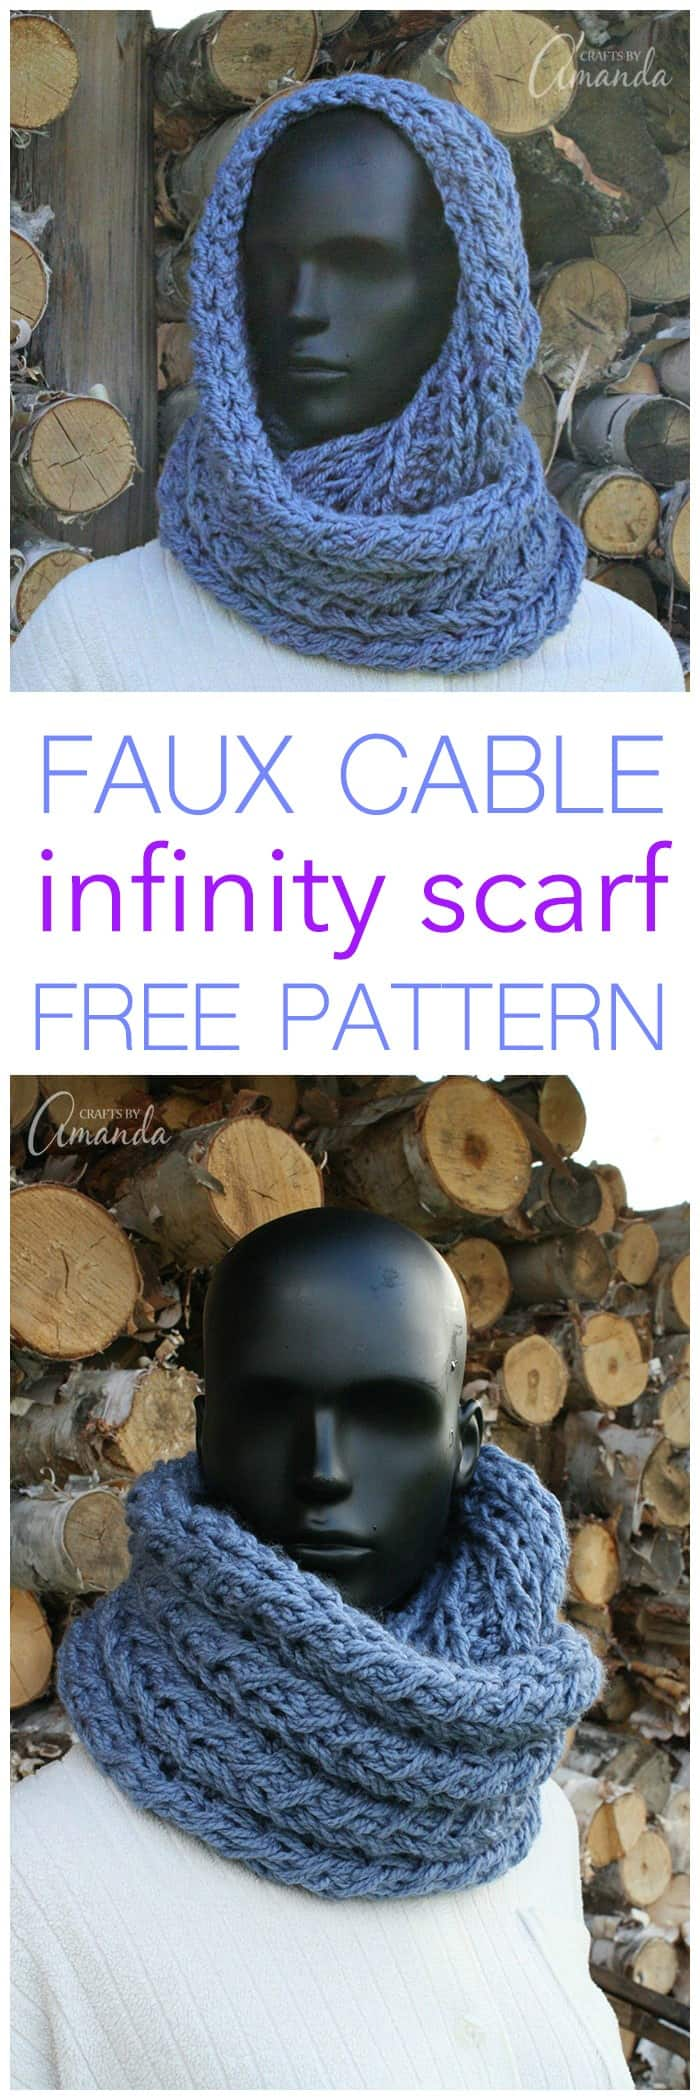 Make your own crochet infinity scarf with this free faux cable crochet pattern. Learn to make your own infinity scarf to keep you warm and cozy this winter.